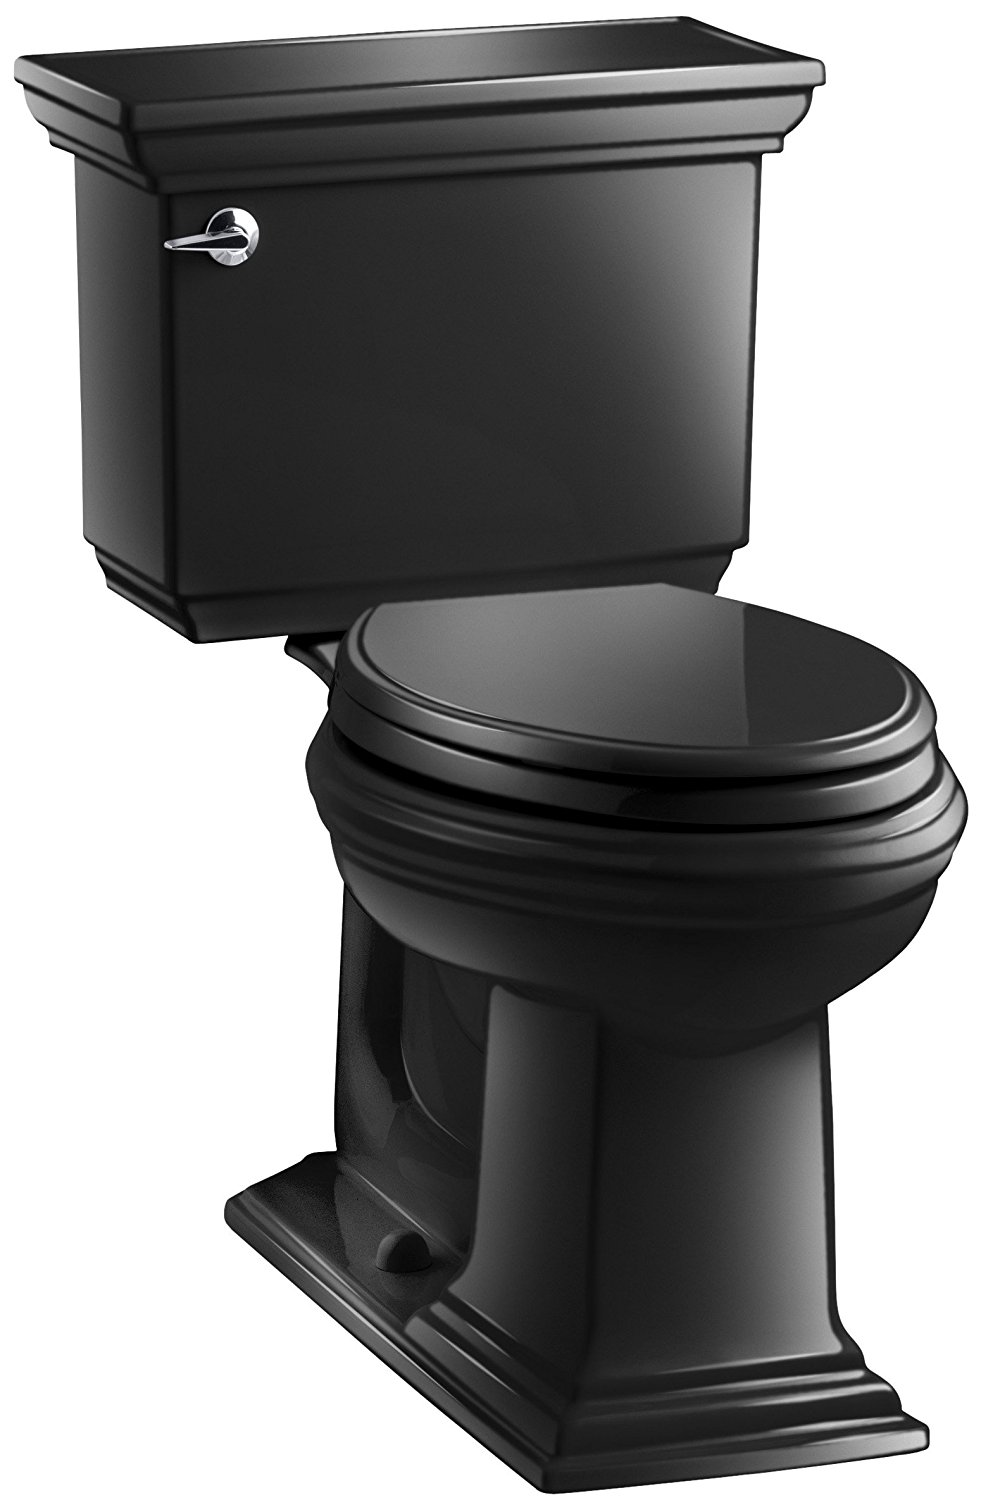 KOHLER K-3817-7 Memoirs Stately Comfort Height Two-Piece Elongated 1.28 GPF Toilet with AquaPiston Flush Technology and Left-Hand Trip Lever, Black Black